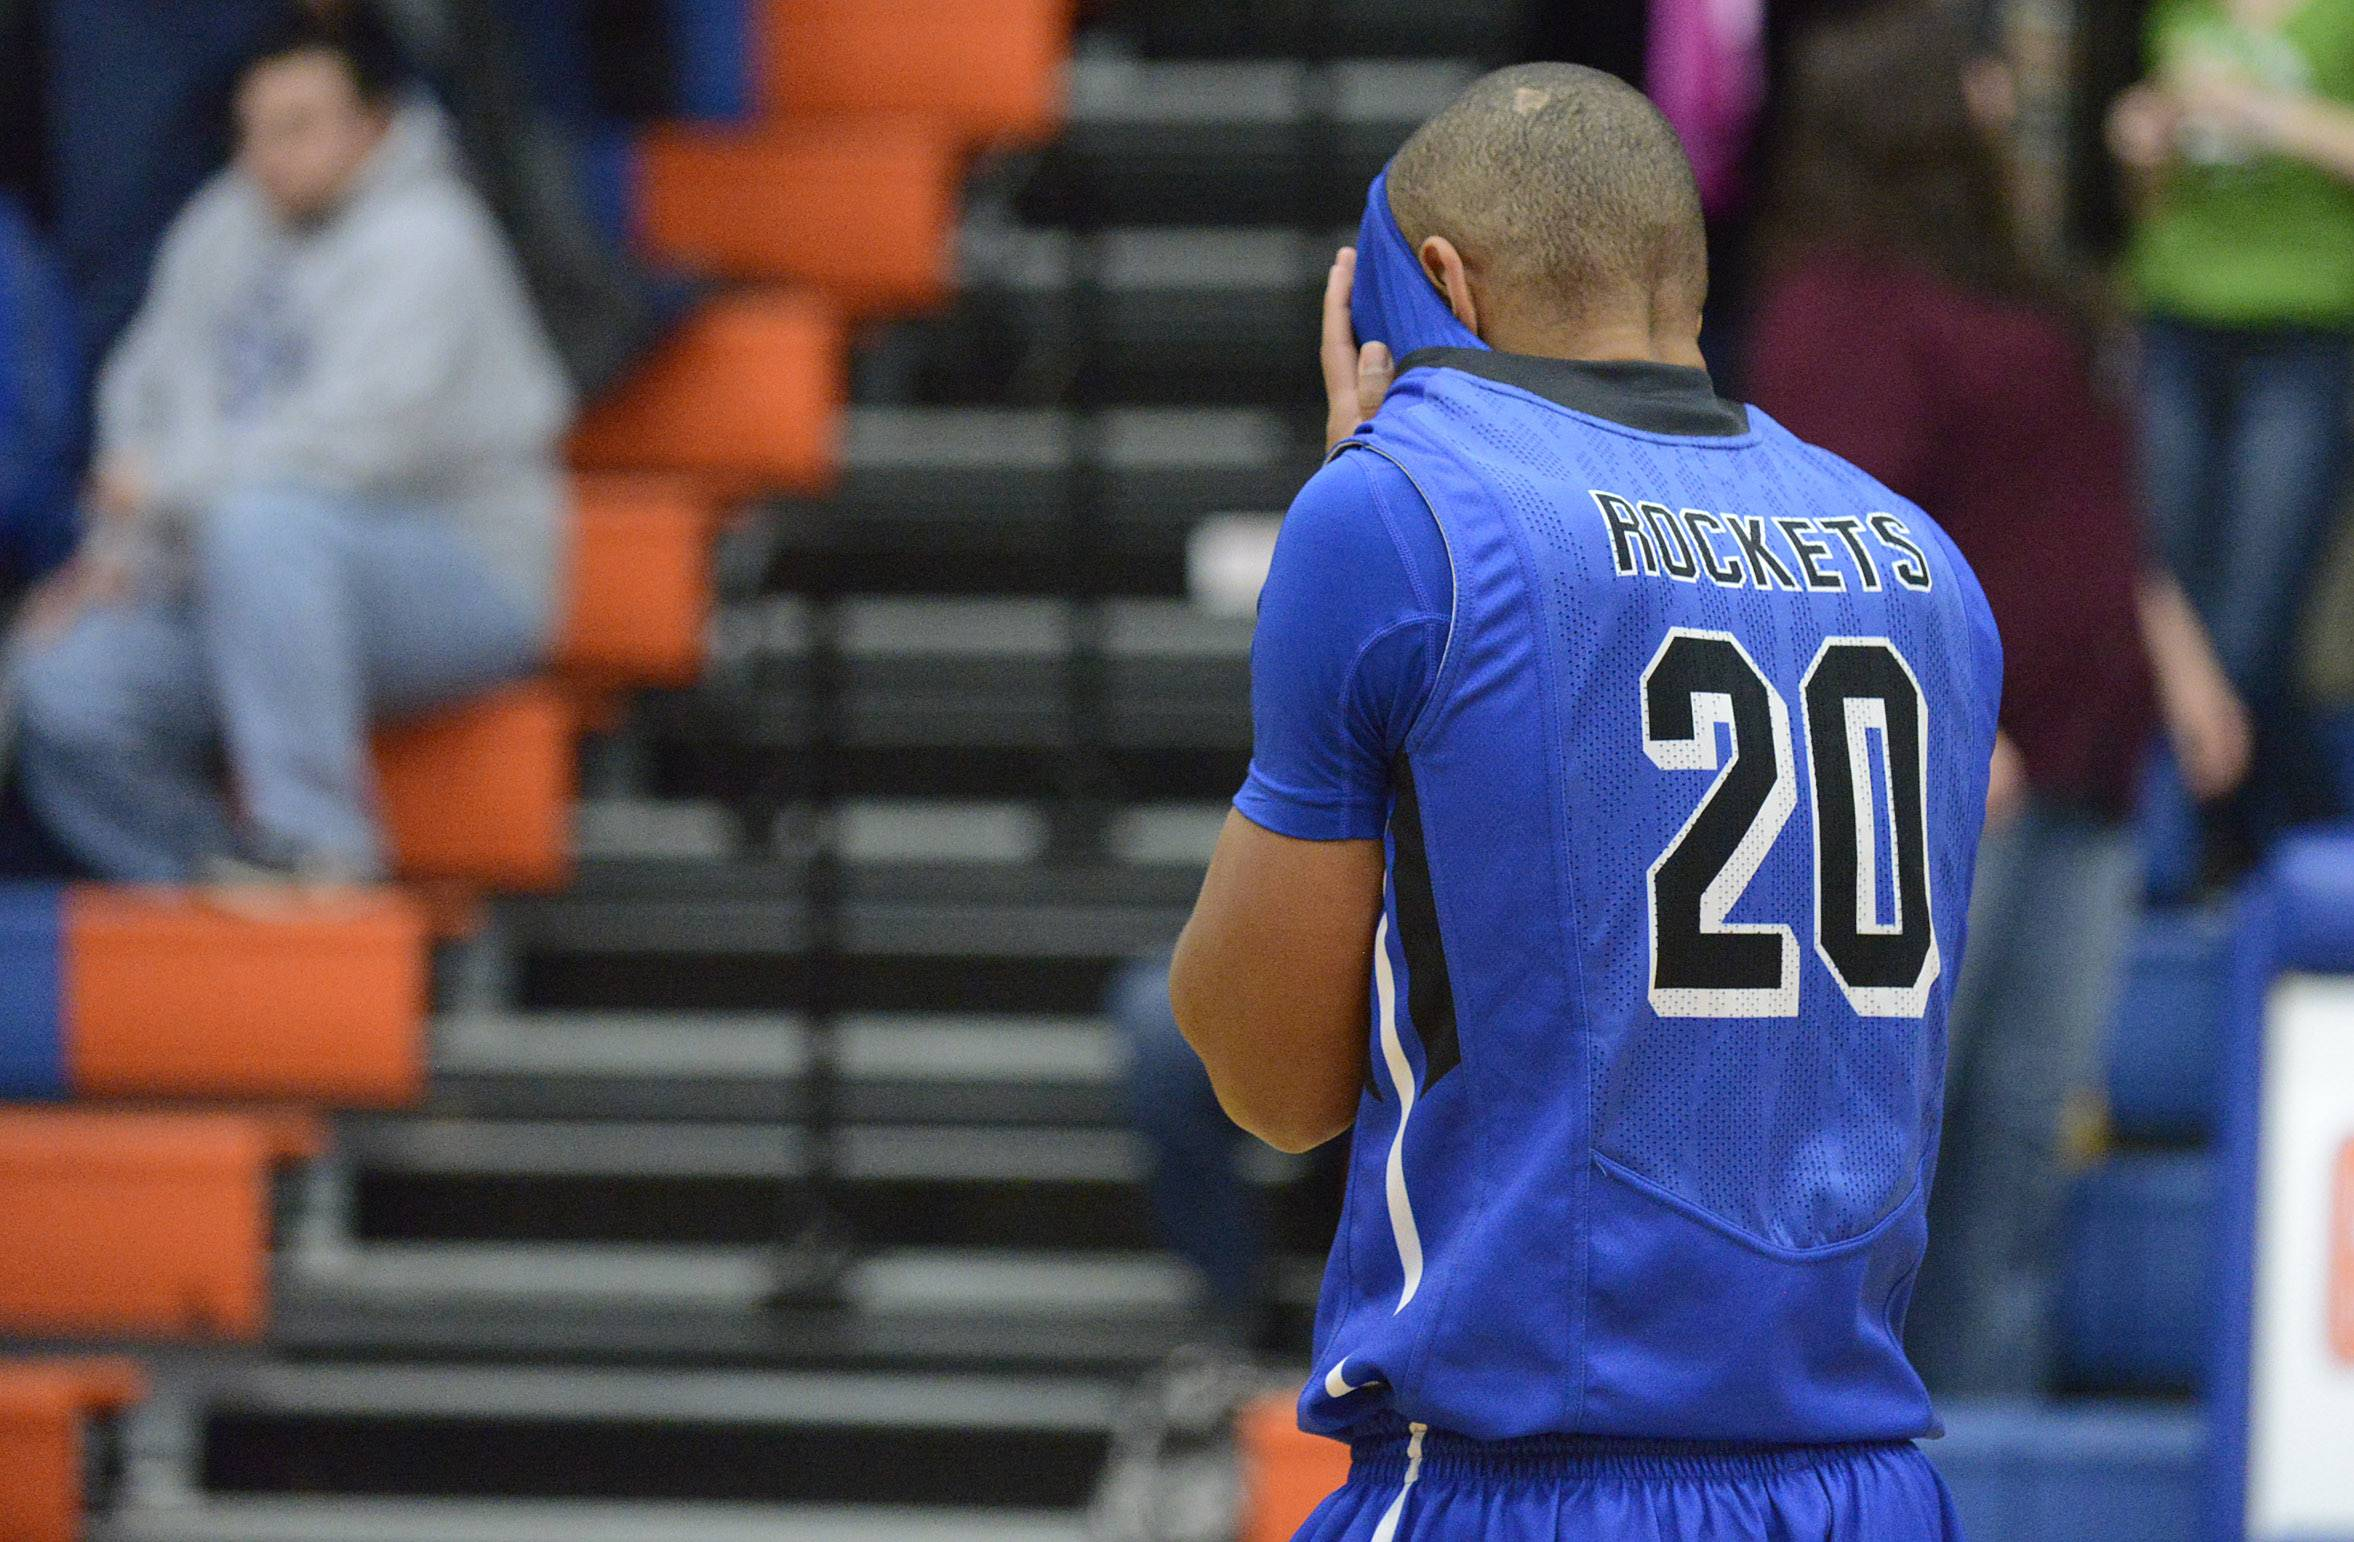 Burlington Central's Reed Hunnicutt walks off the court after the Rockets' loss to Wheaton Academy in the Class 3A regional at Genoa-Kingston High School in Genoa on Wednesday.